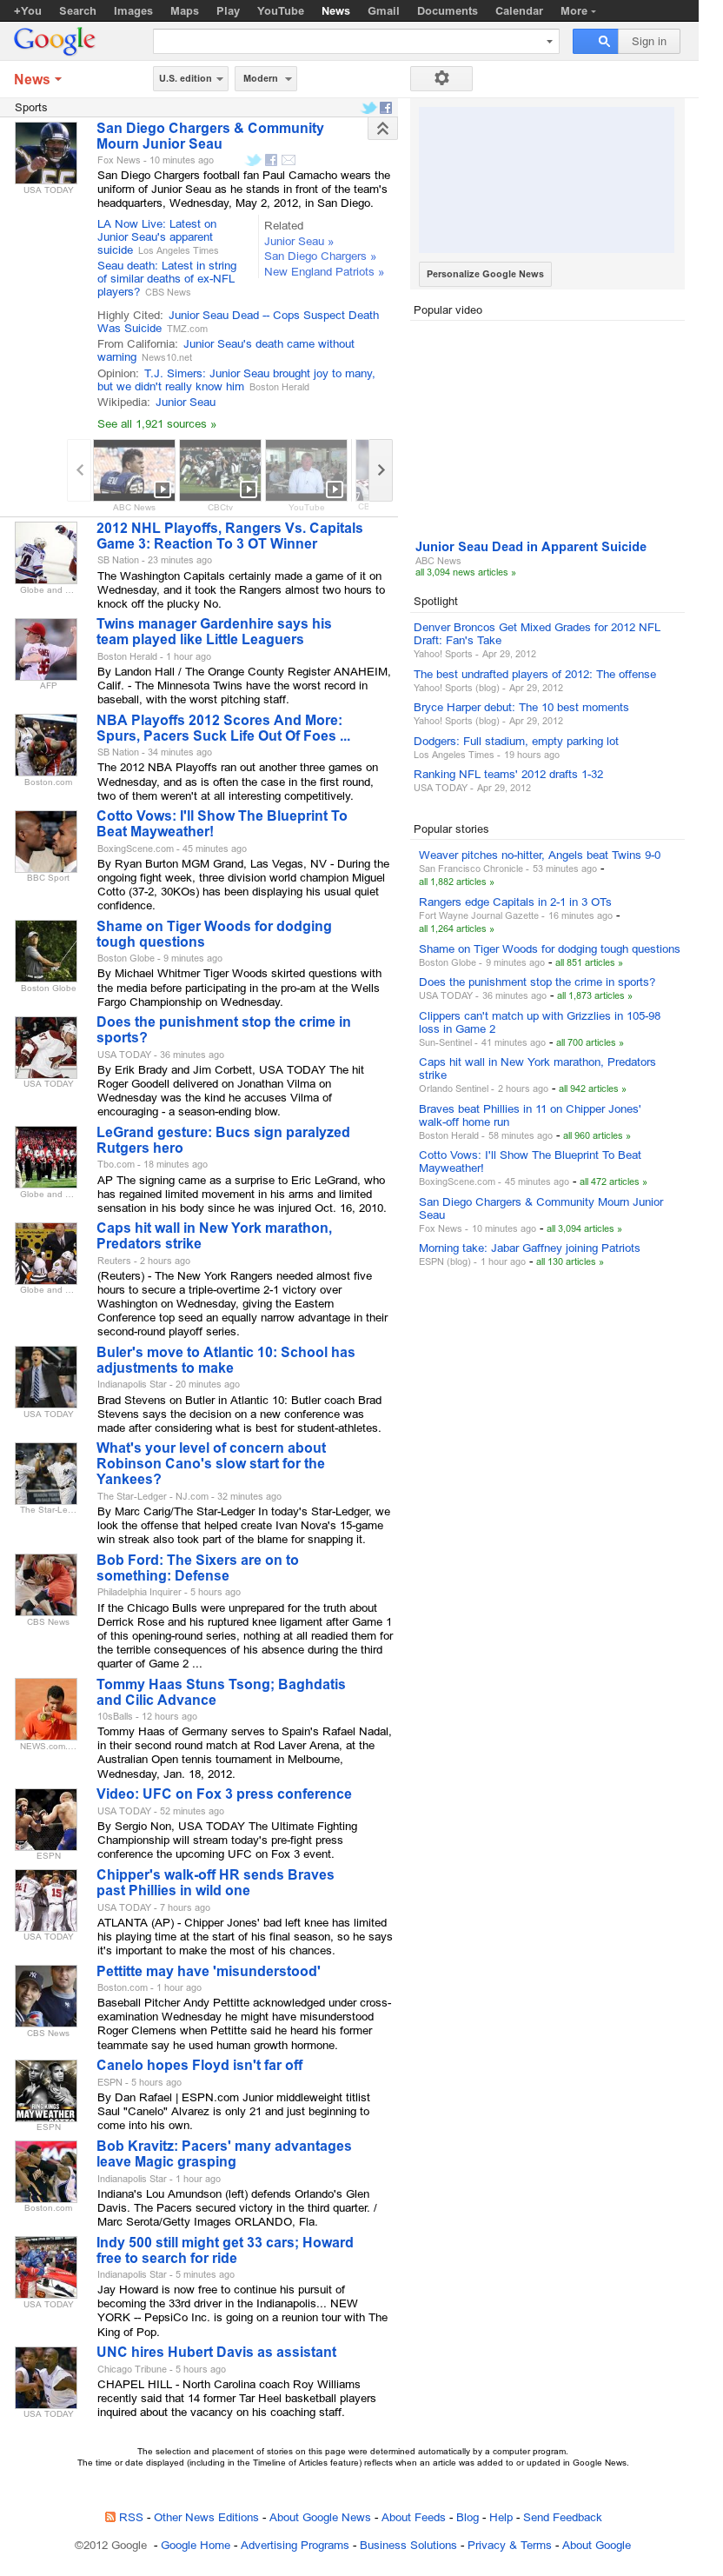 Google News: Sports at Thursday May 3, 2012, 1:06 p.m. UTC